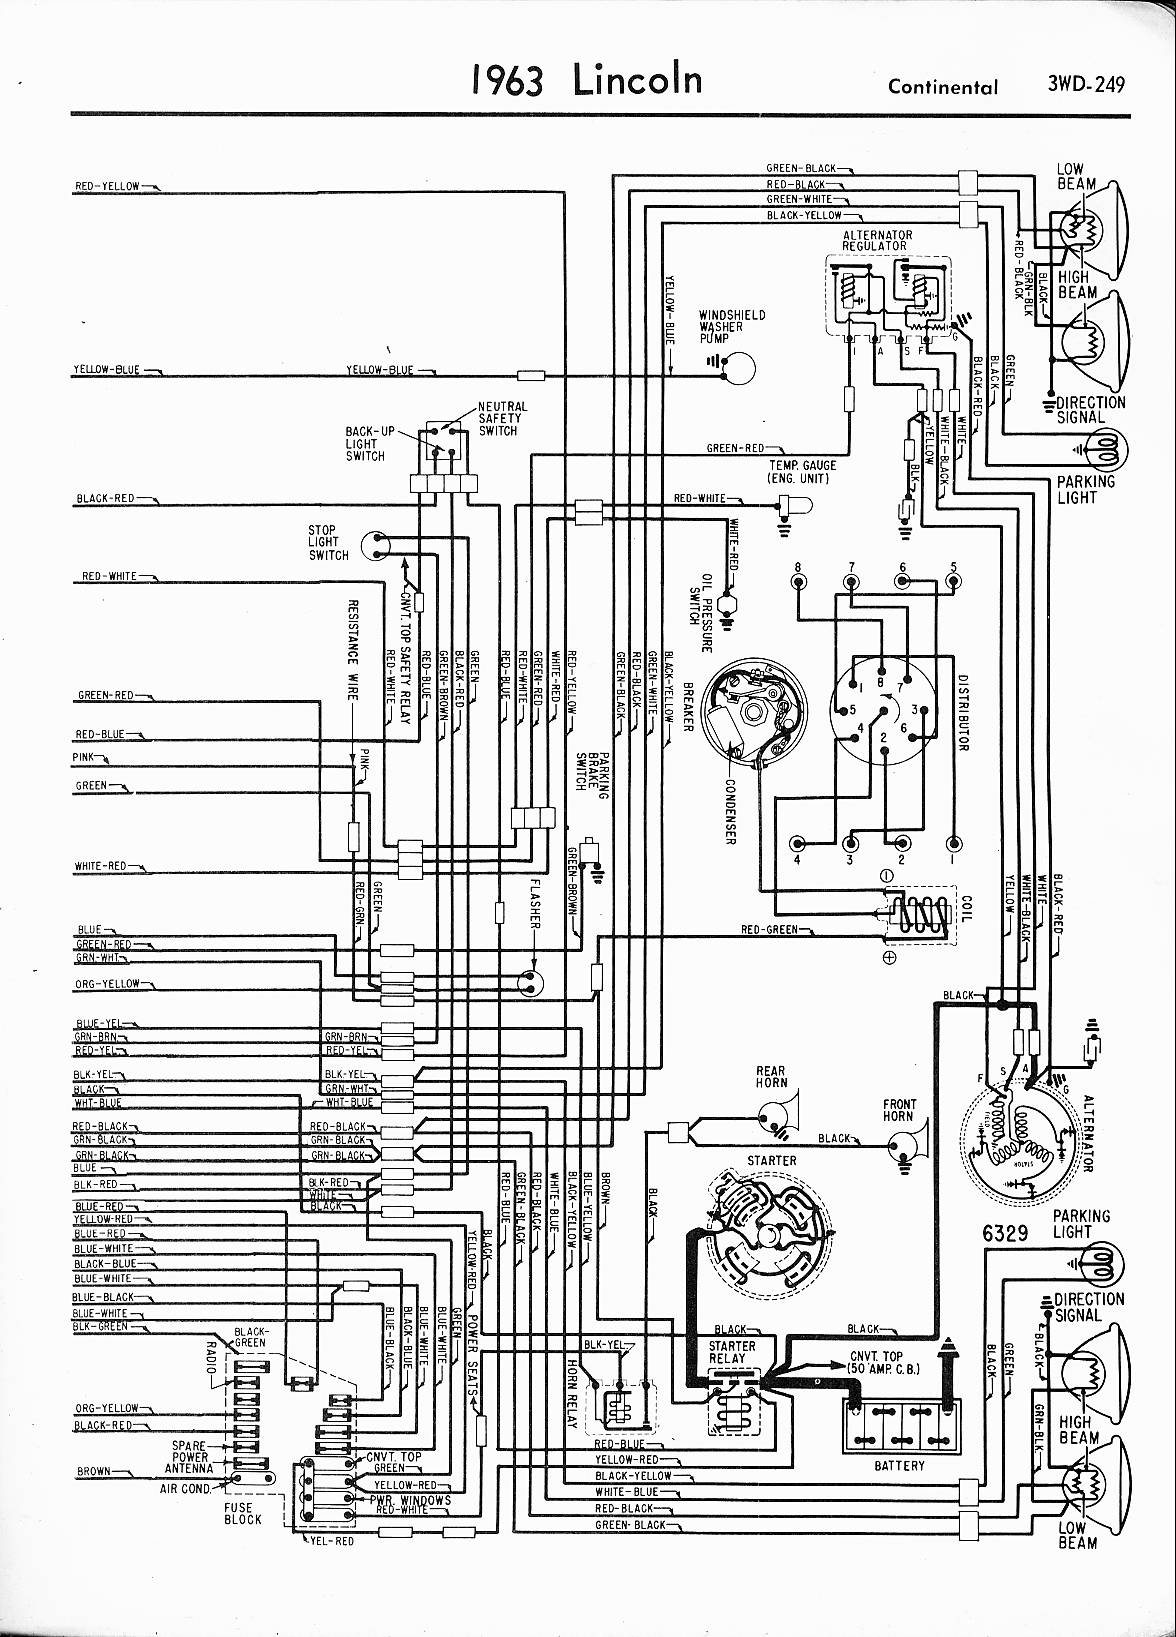 hight resolution of 1964 lincoln fuse box wiring diagram detailed rh 20 9 5 gastspiel gerhartz de 1964 lincoln